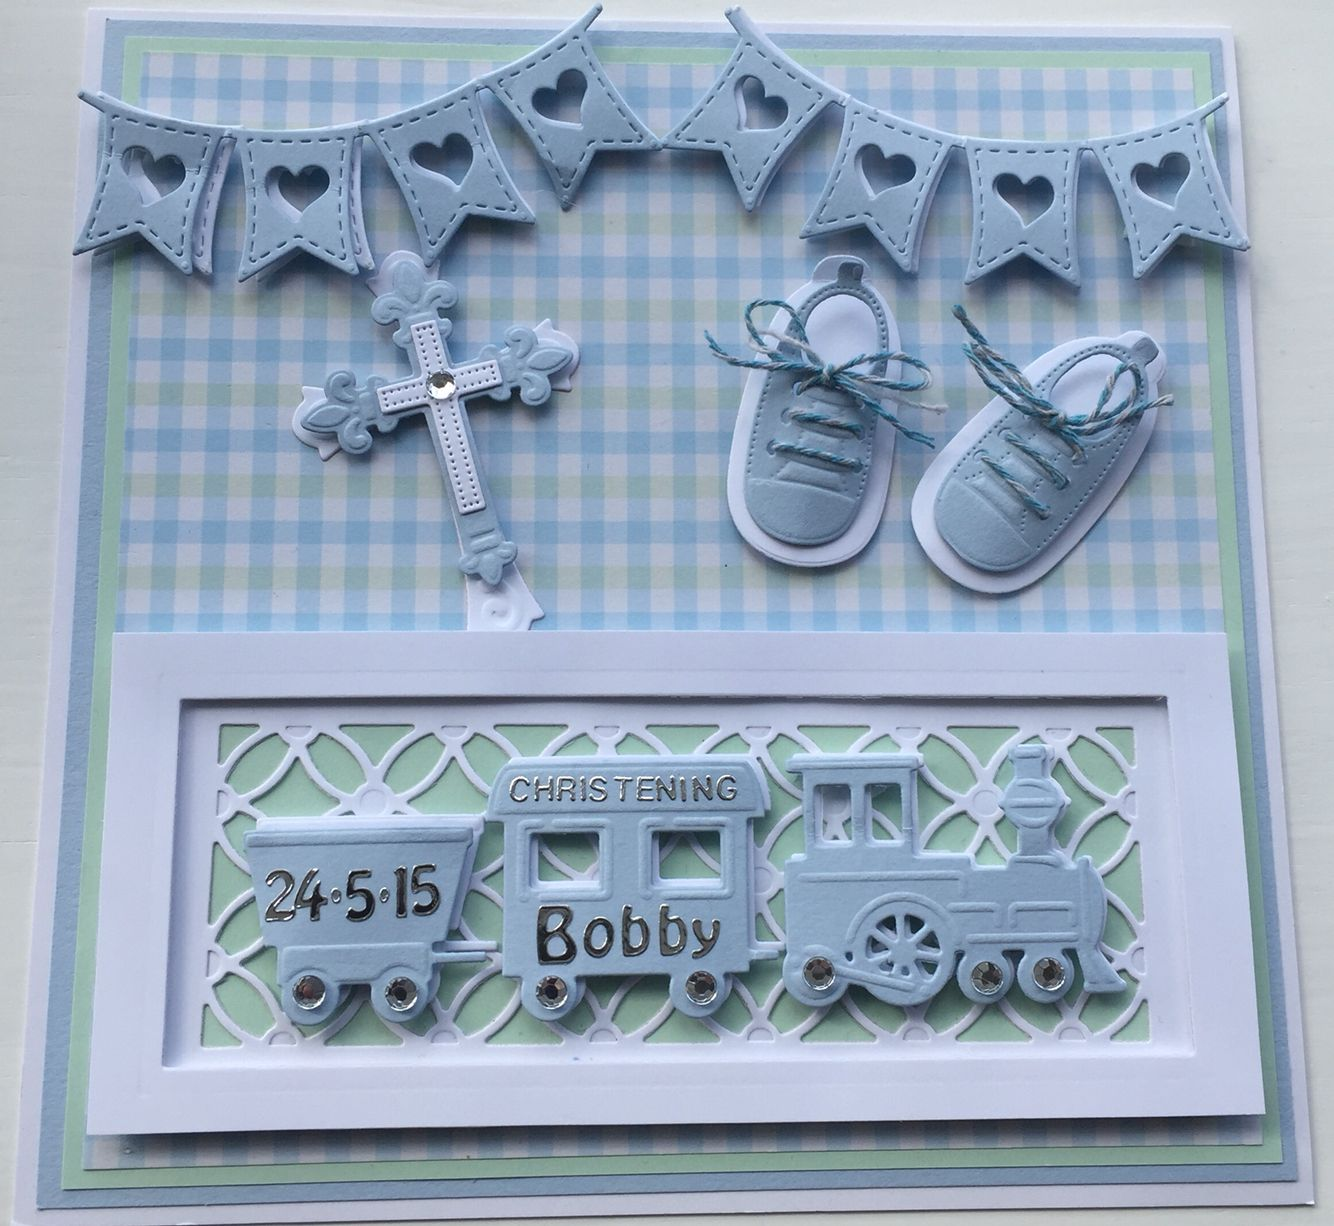 Christening Cards by Sospecial Cards using Marianne Dies                                                                                                                                                                                 More